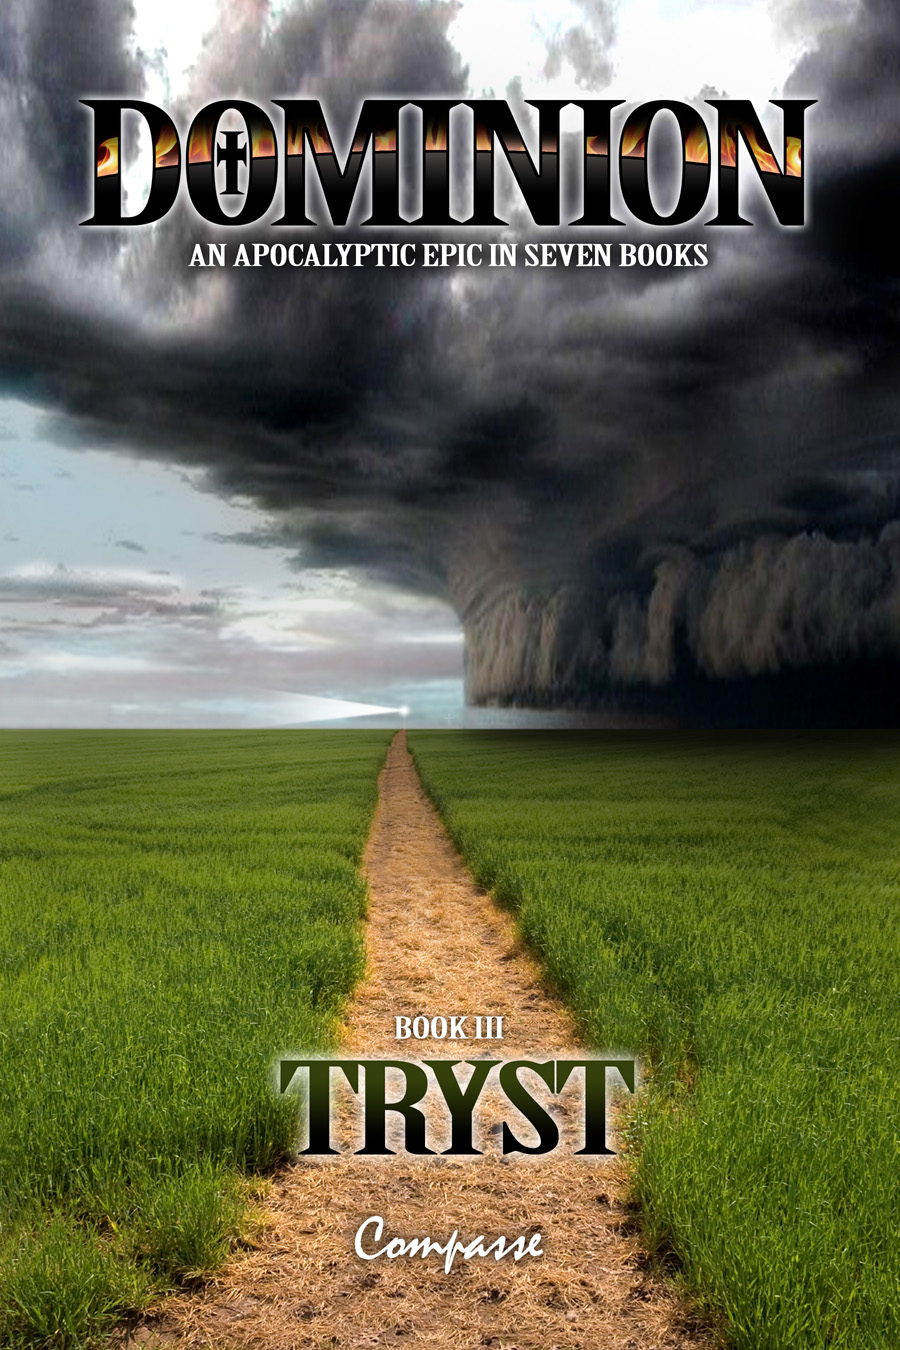 Apocalyptic Fiction book